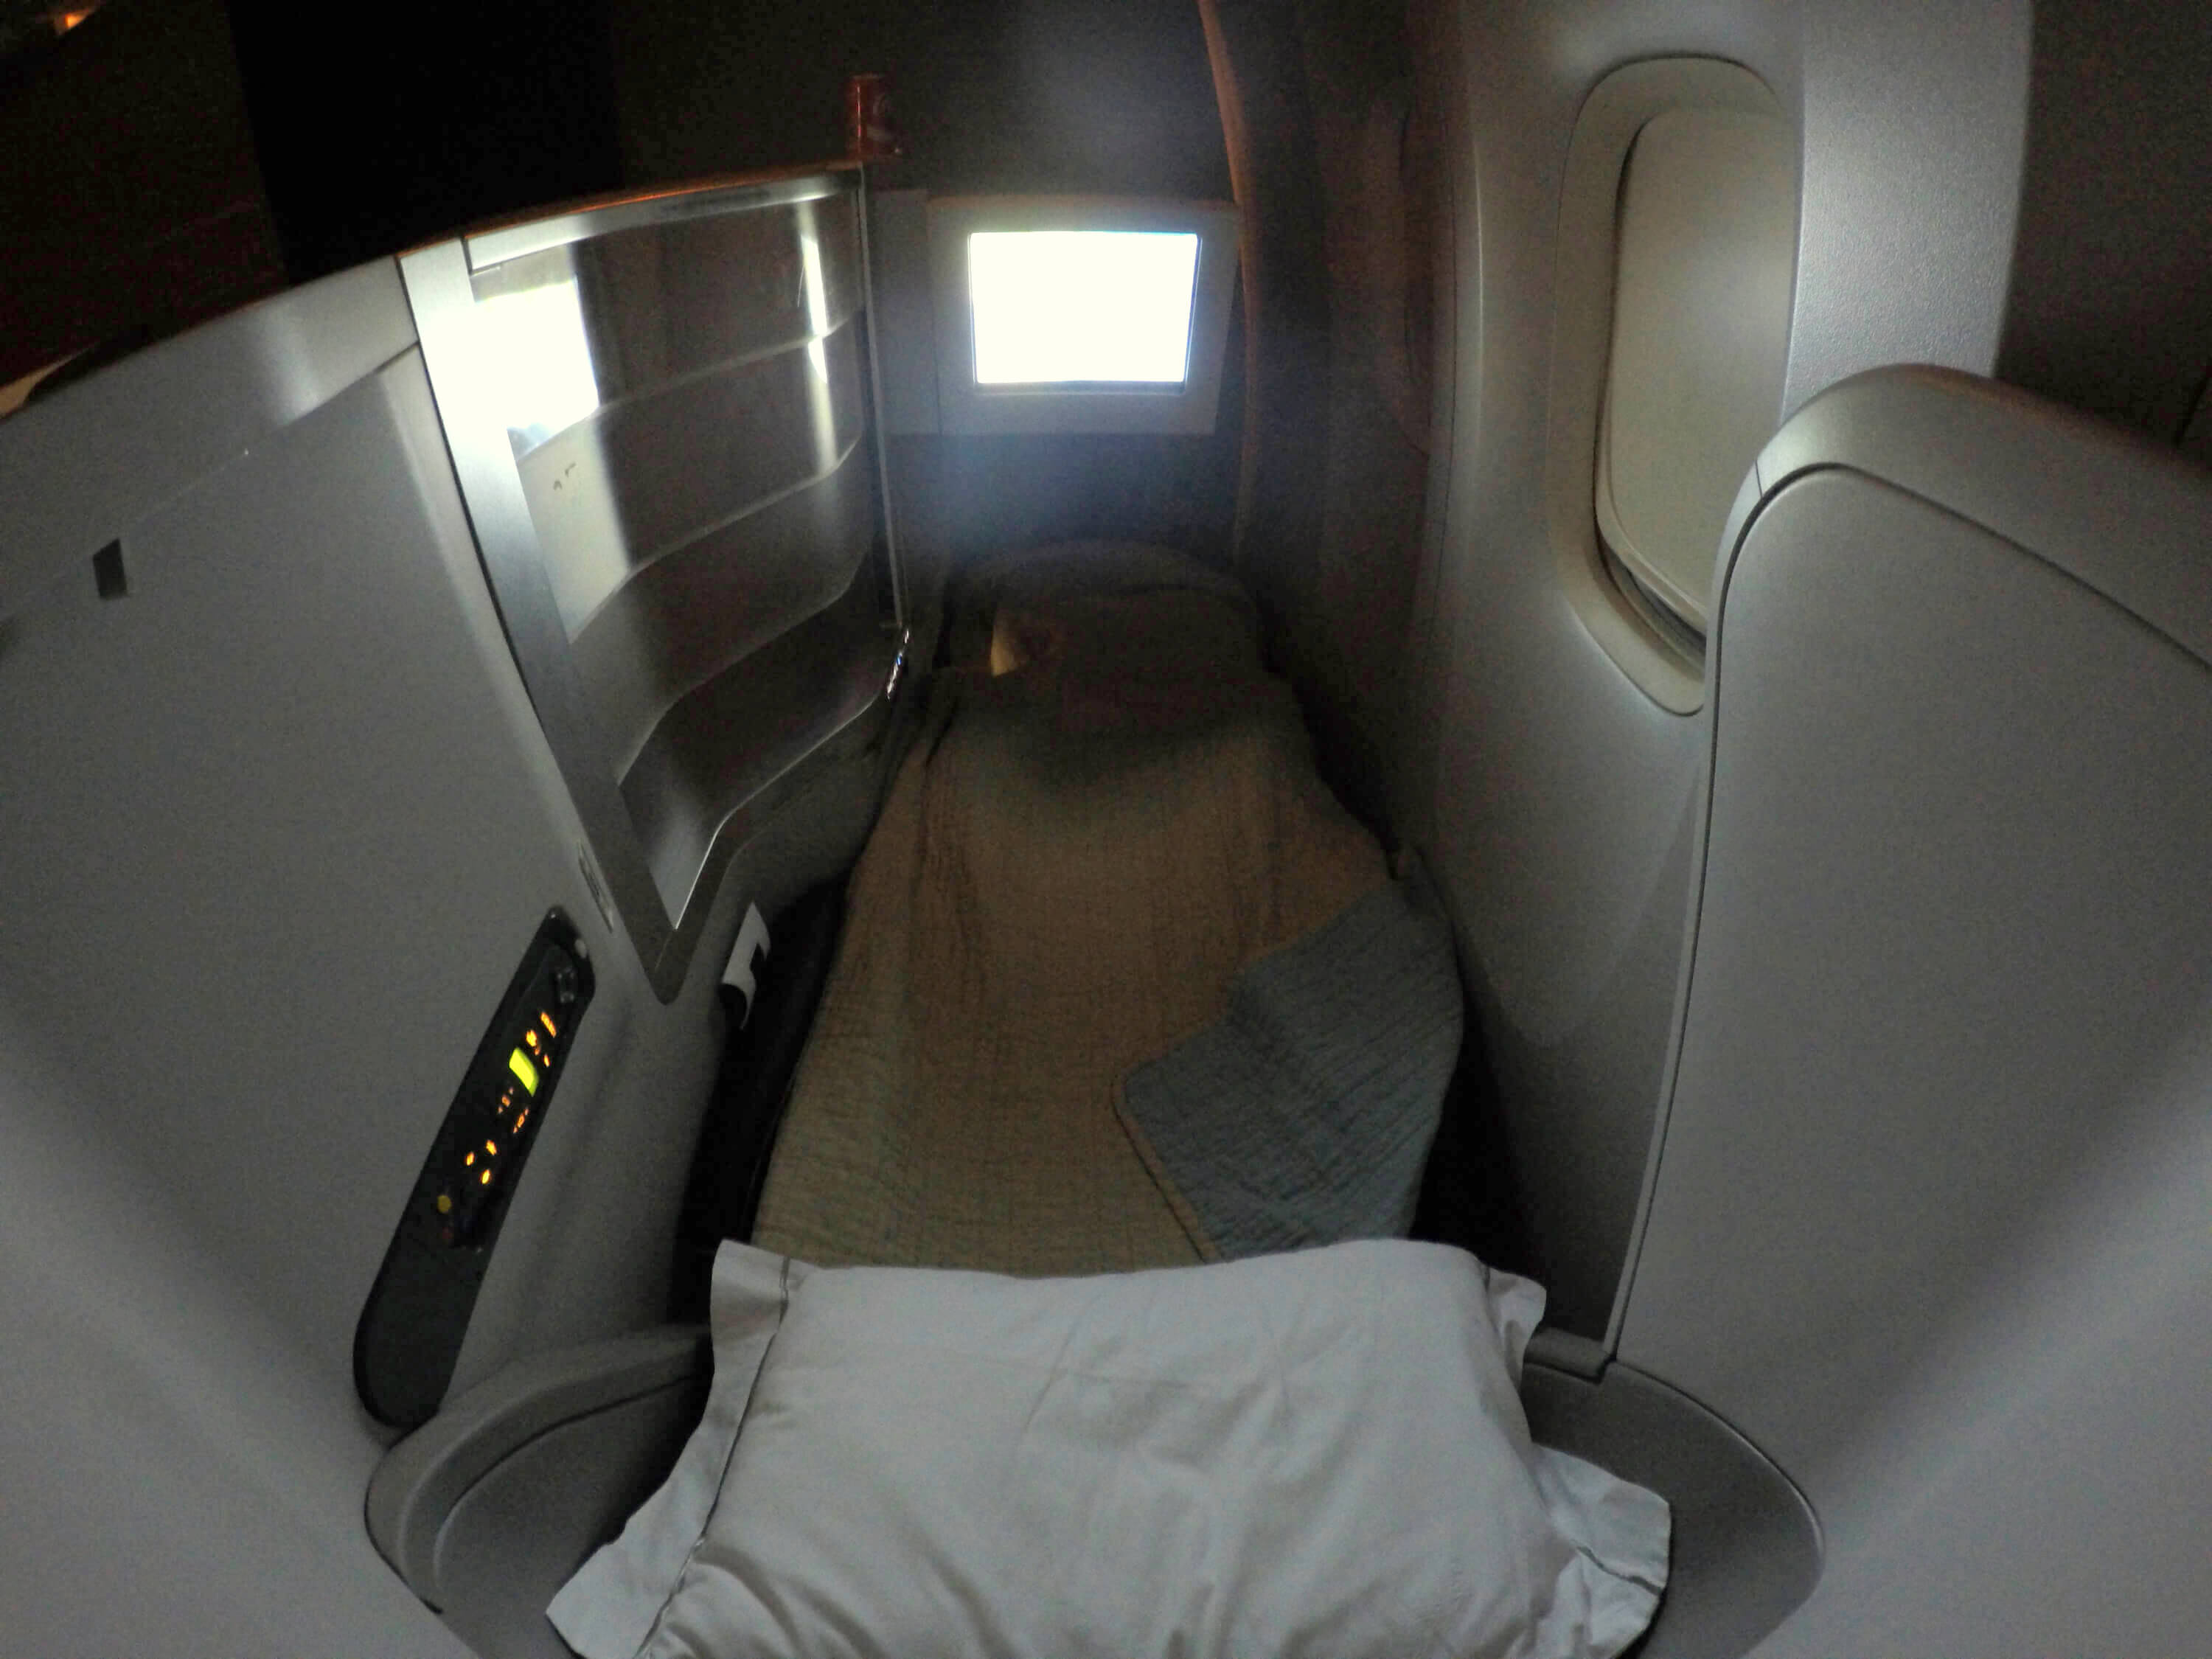 British Airways Business Class Boeing 777-200